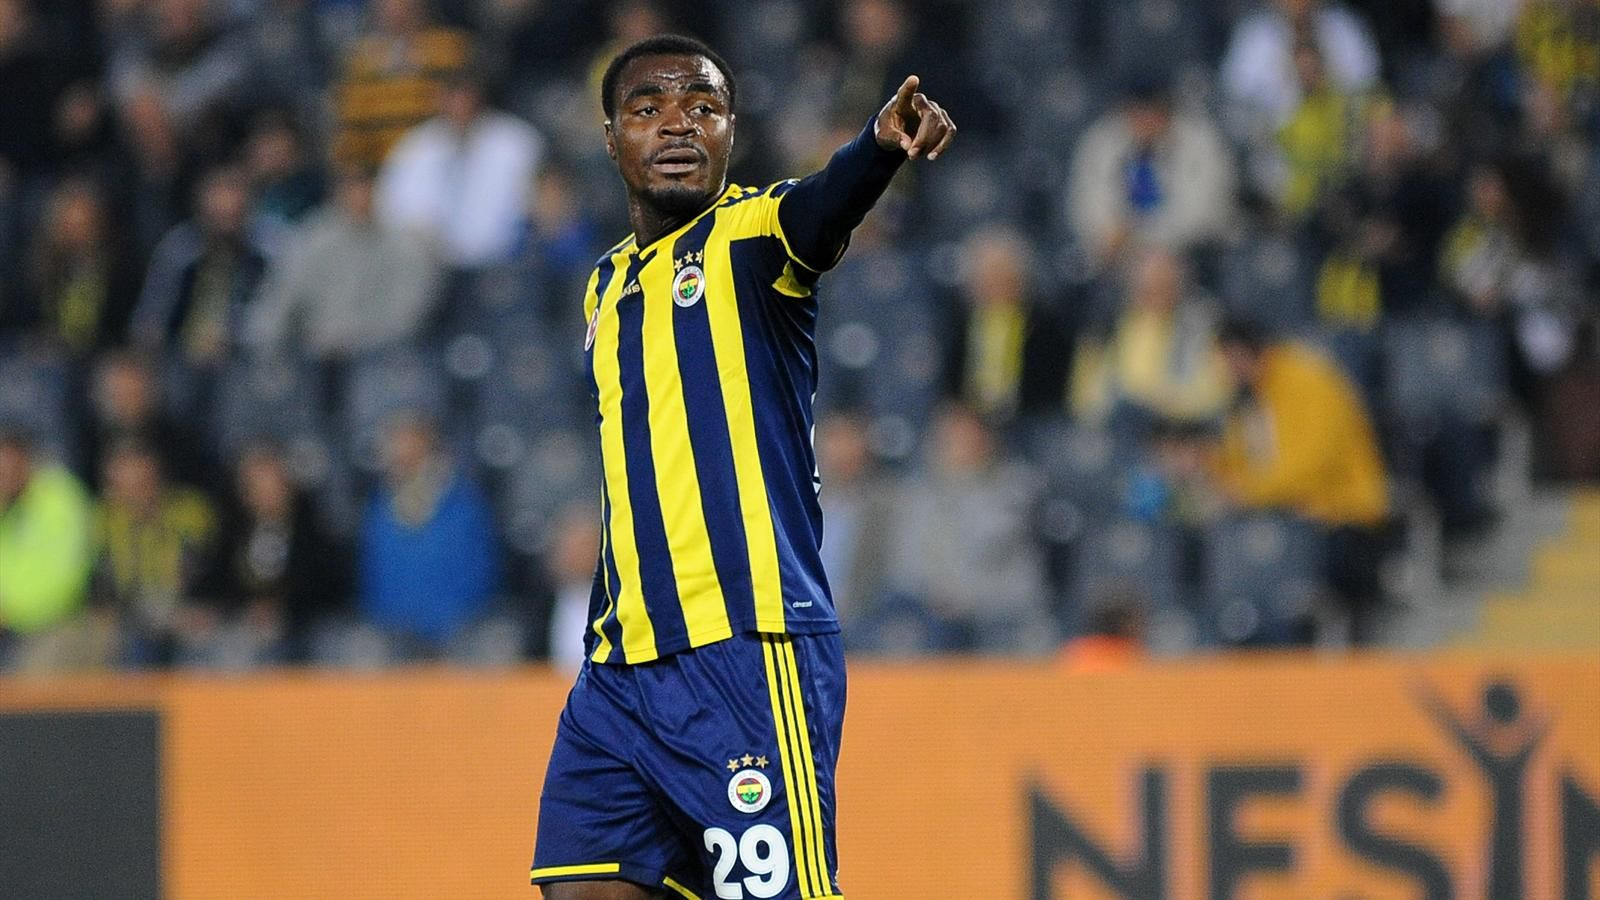 Emenike Drops Massive Hint About Joining West Ham United The Trent